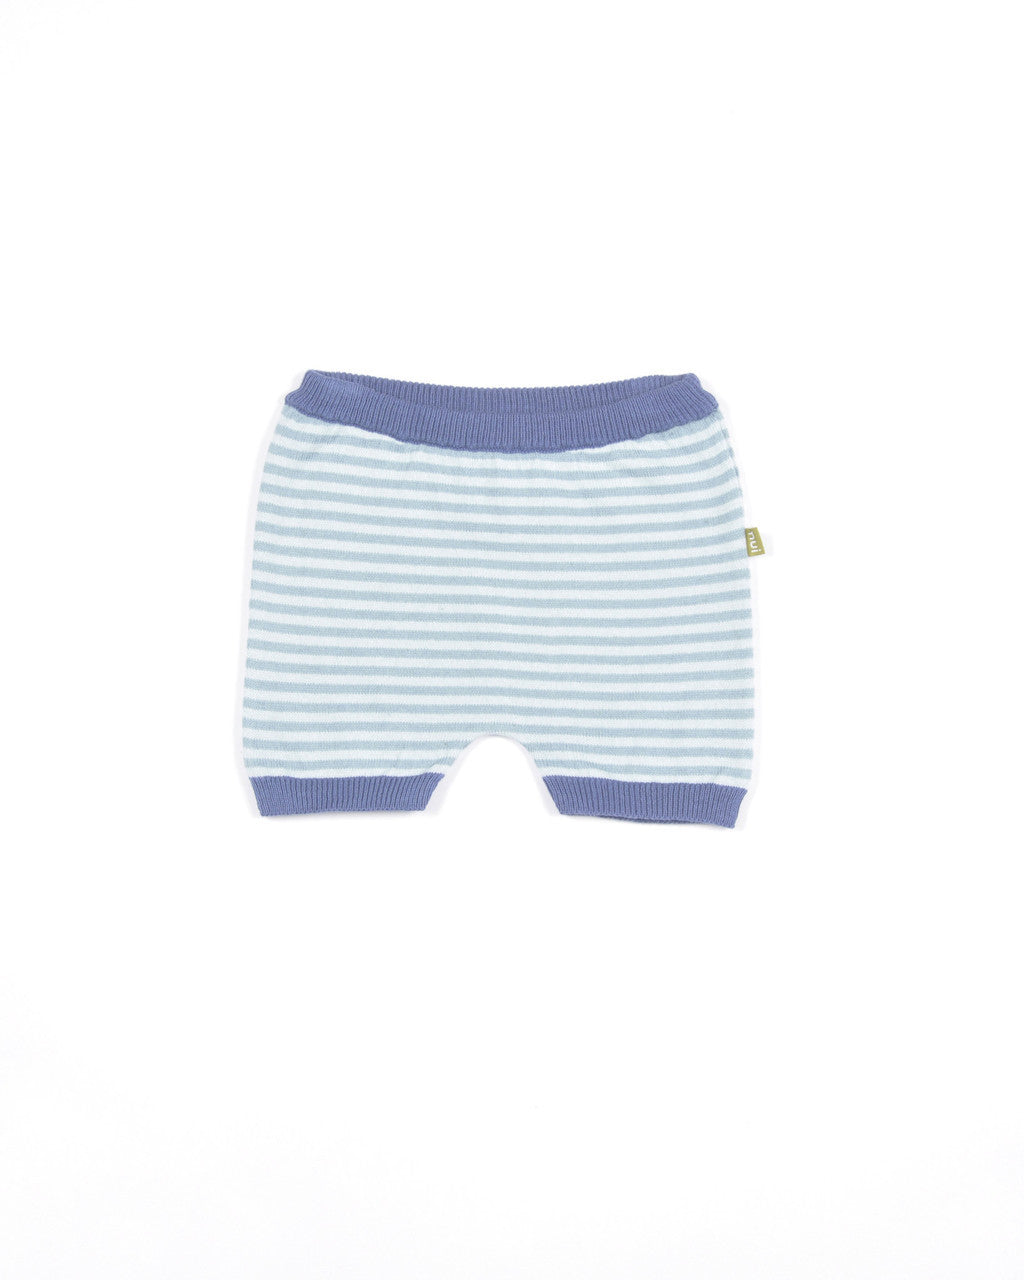 nui organic cotton betty bloomer shown in teal stripe